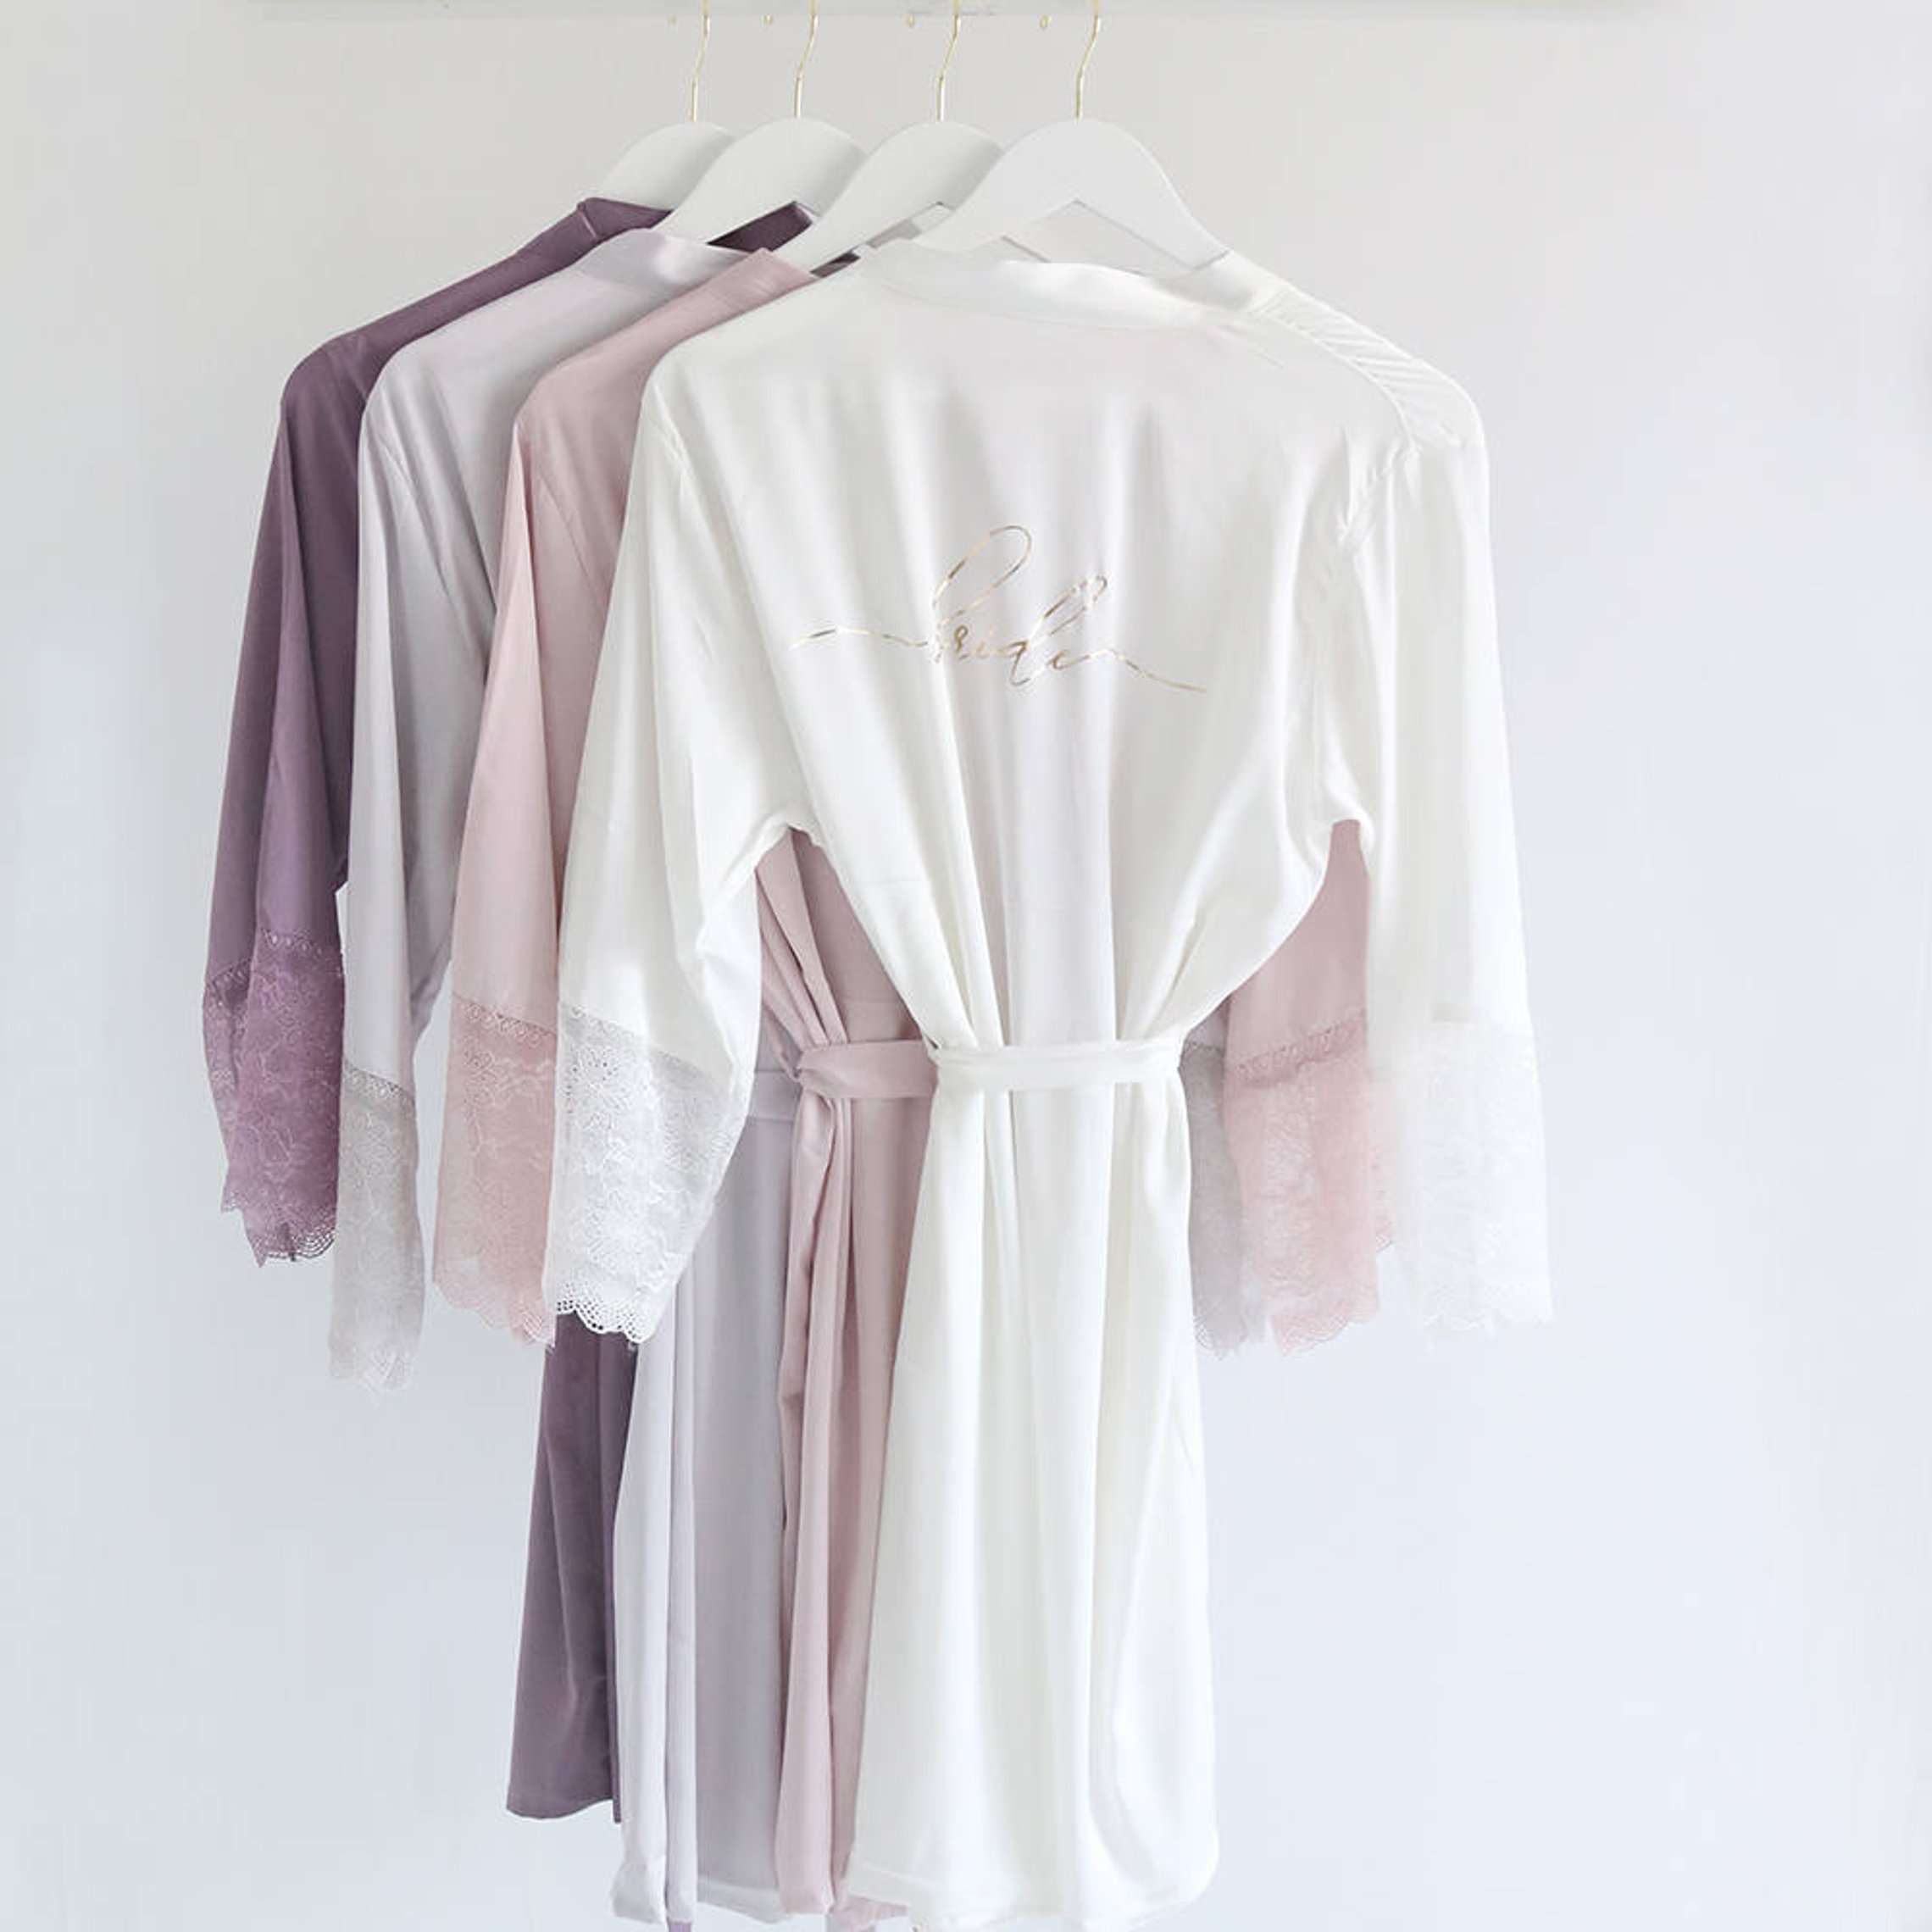 ffe37fa3c5 31 of the Prettiest Getting Ready Robes for Your Bridal Party